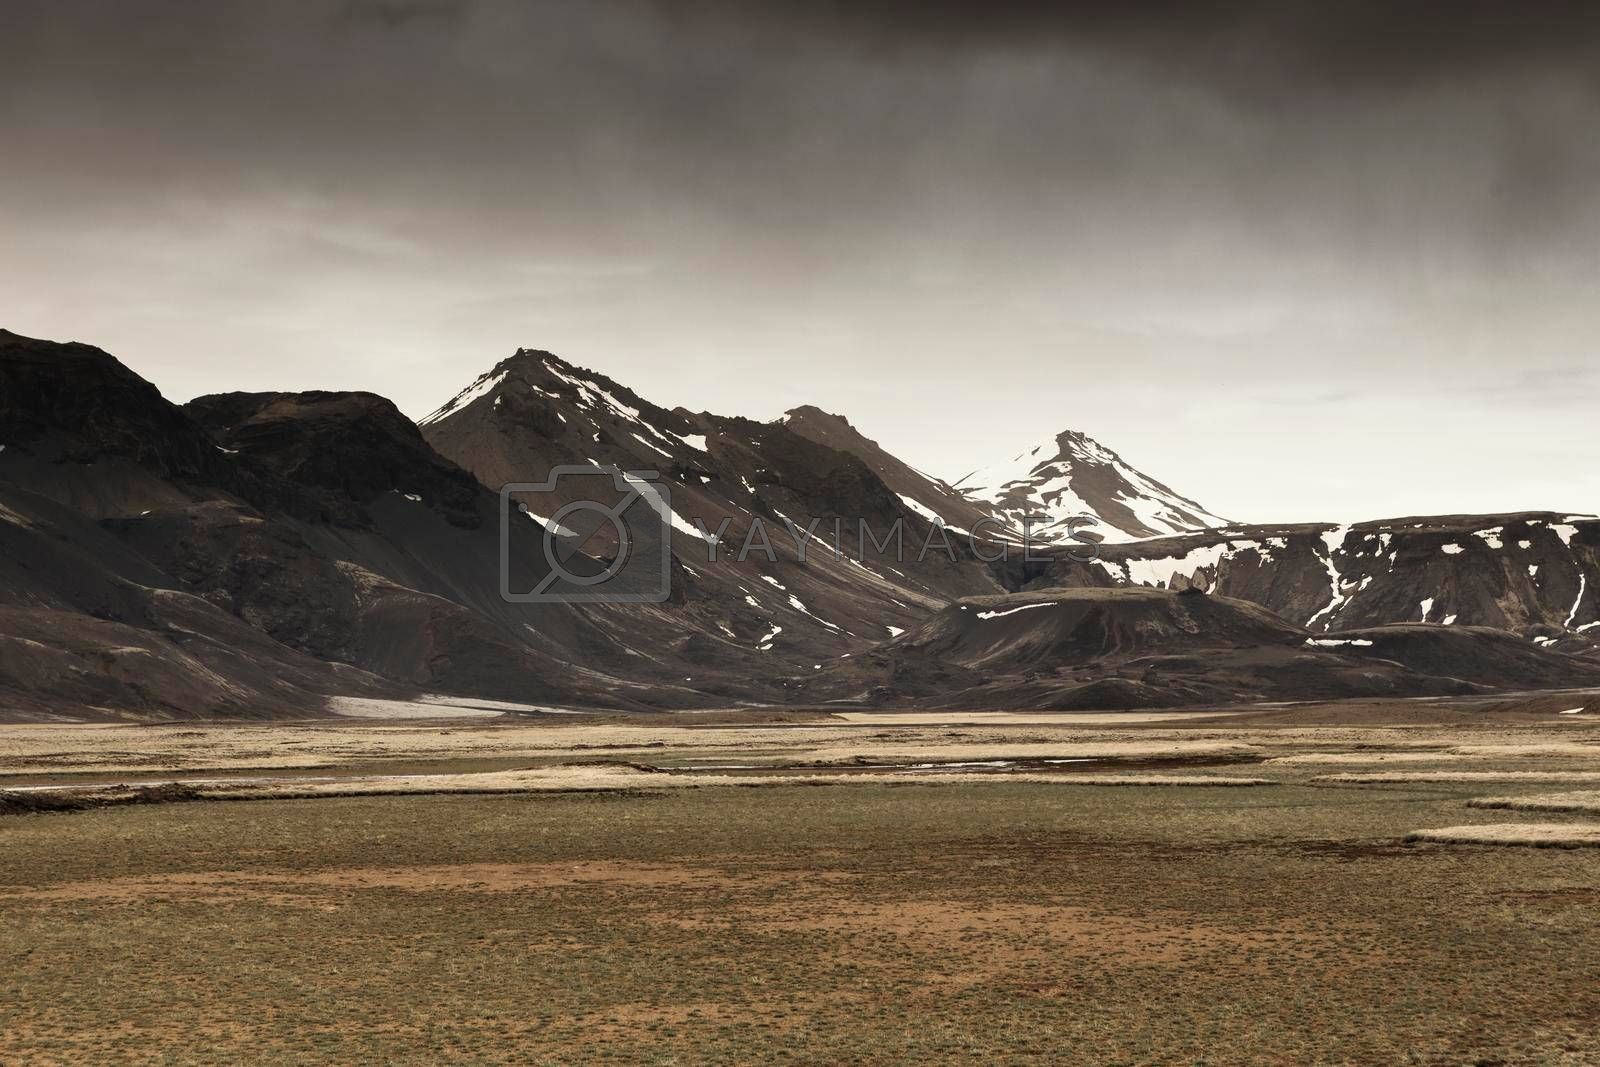 Royalty free image of Iceland Landscape by Iko